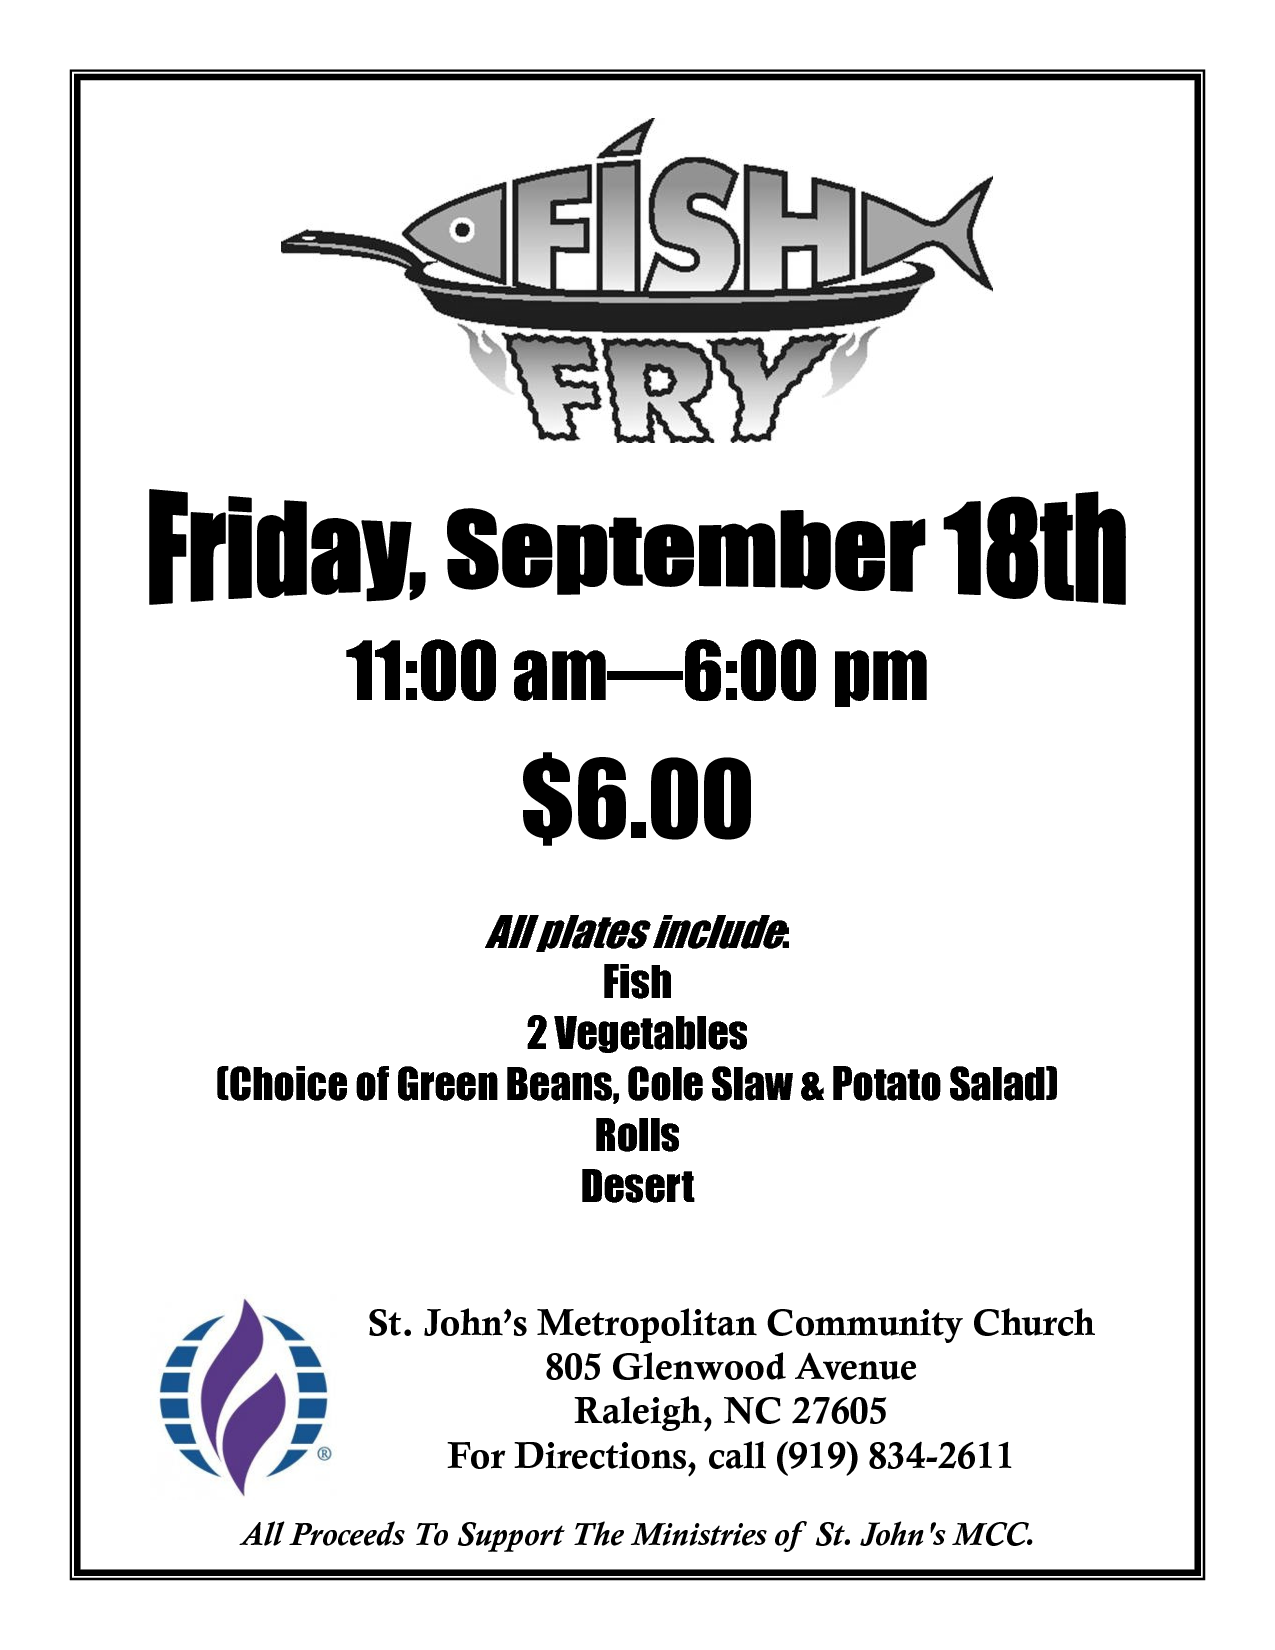 fish fry flyer templates fish fry poster fish fry fish fry flyer templates fish fry poster